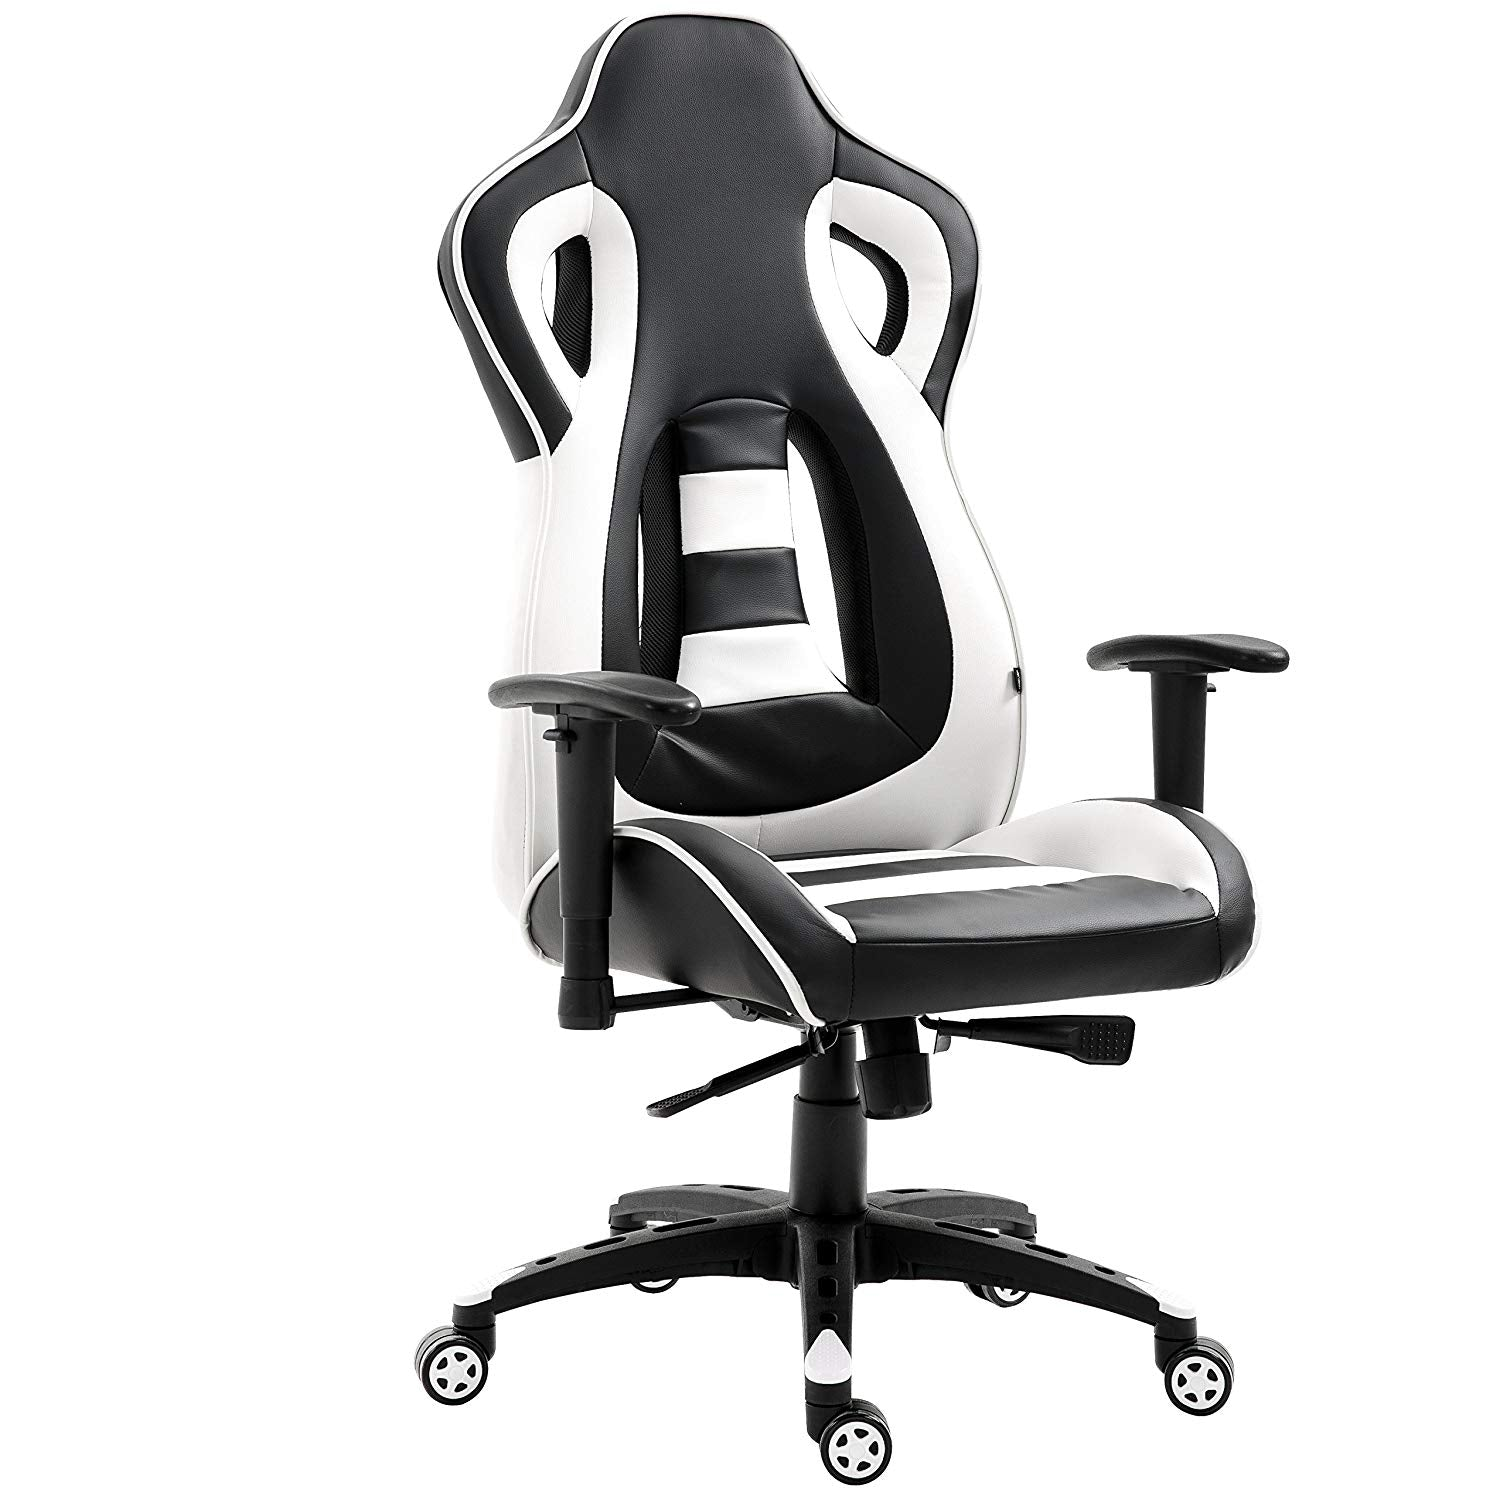 ctf racing style high back swivel gaming chair computer desk chair with back vents design white